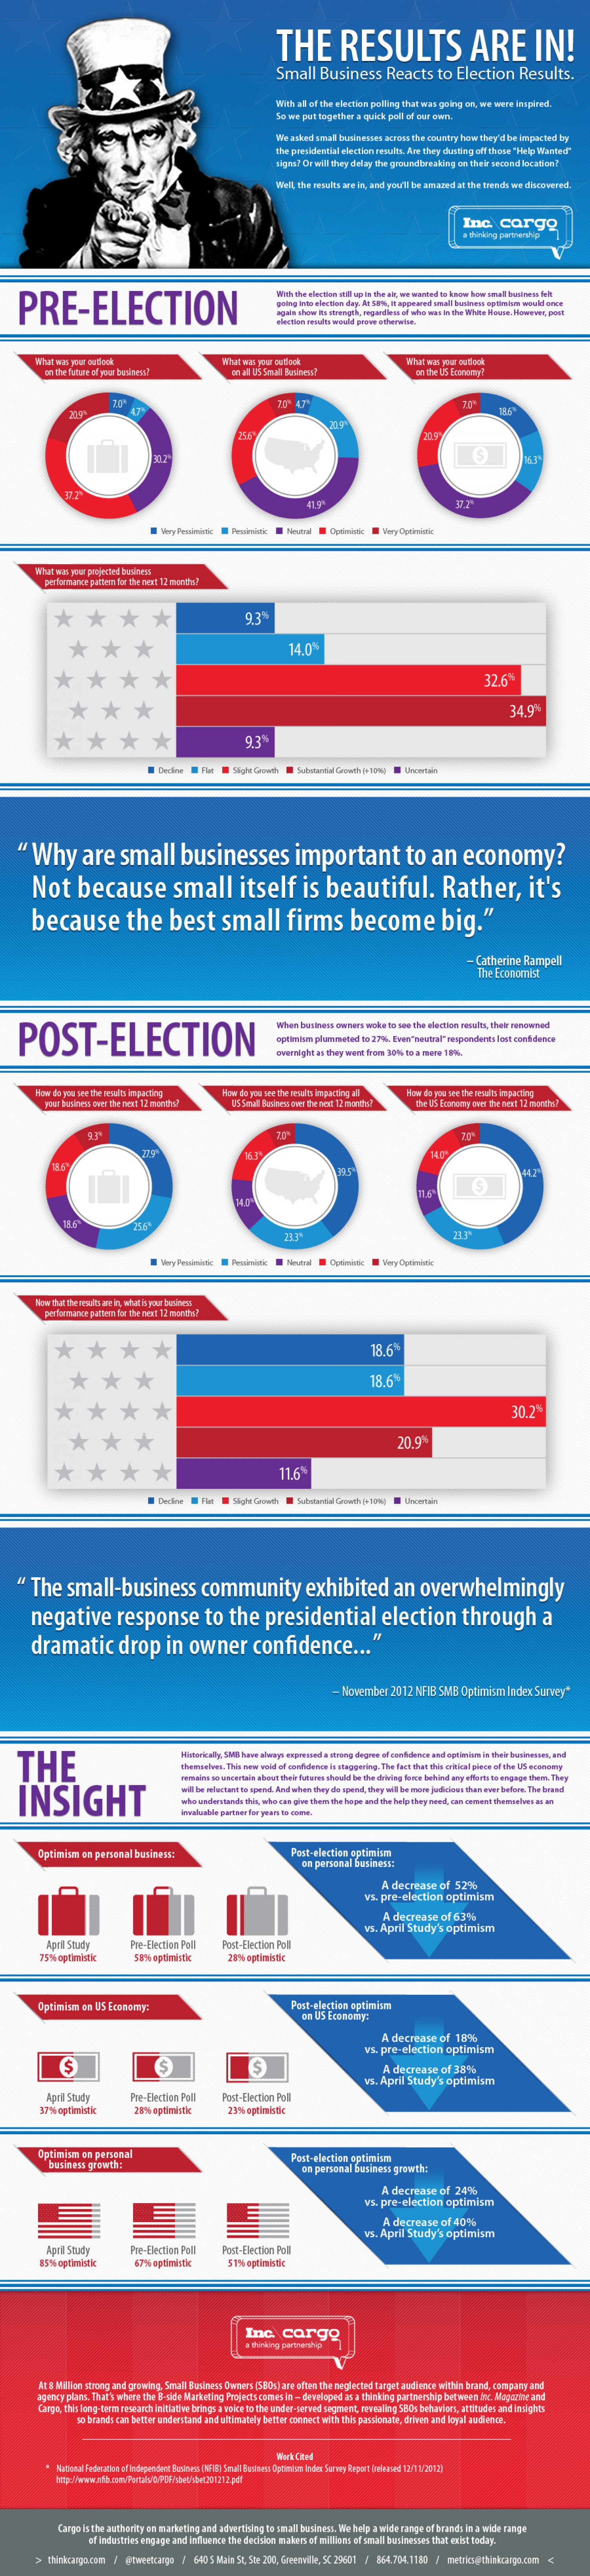 Small Business Reacts to 2012 Election Results Infographic